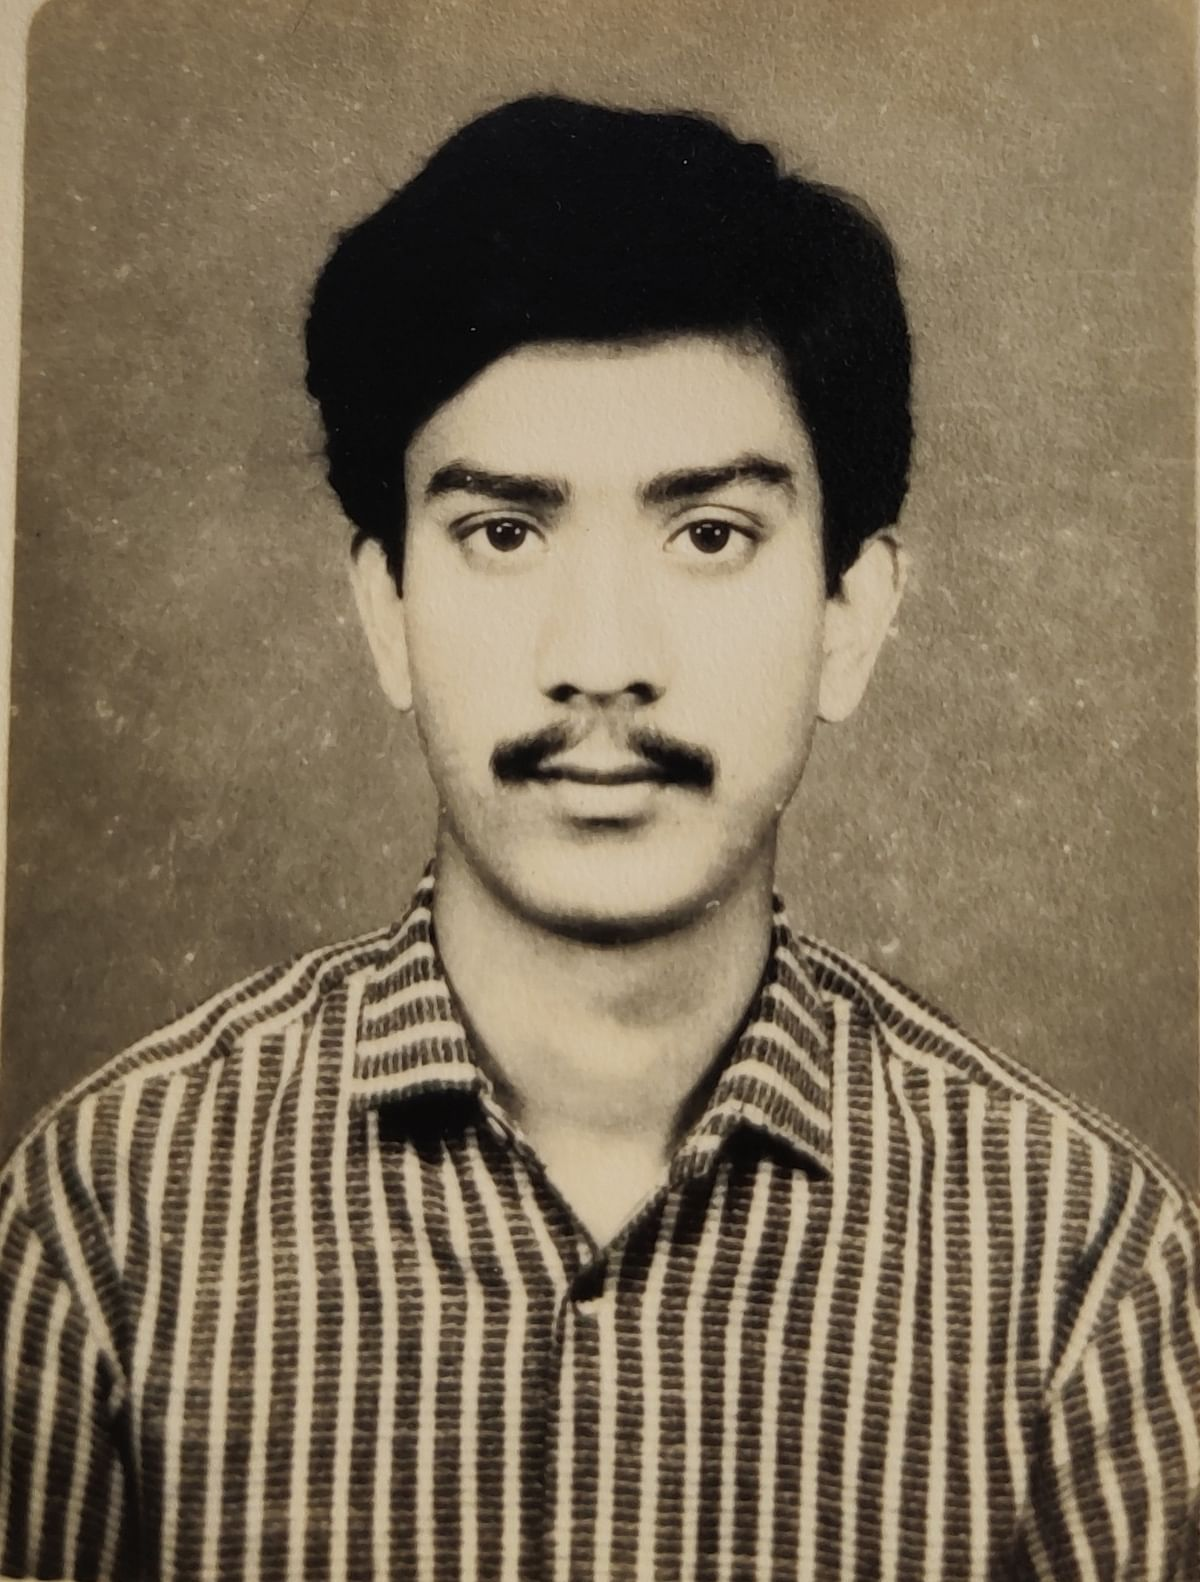 A picture of Das from his early college days.